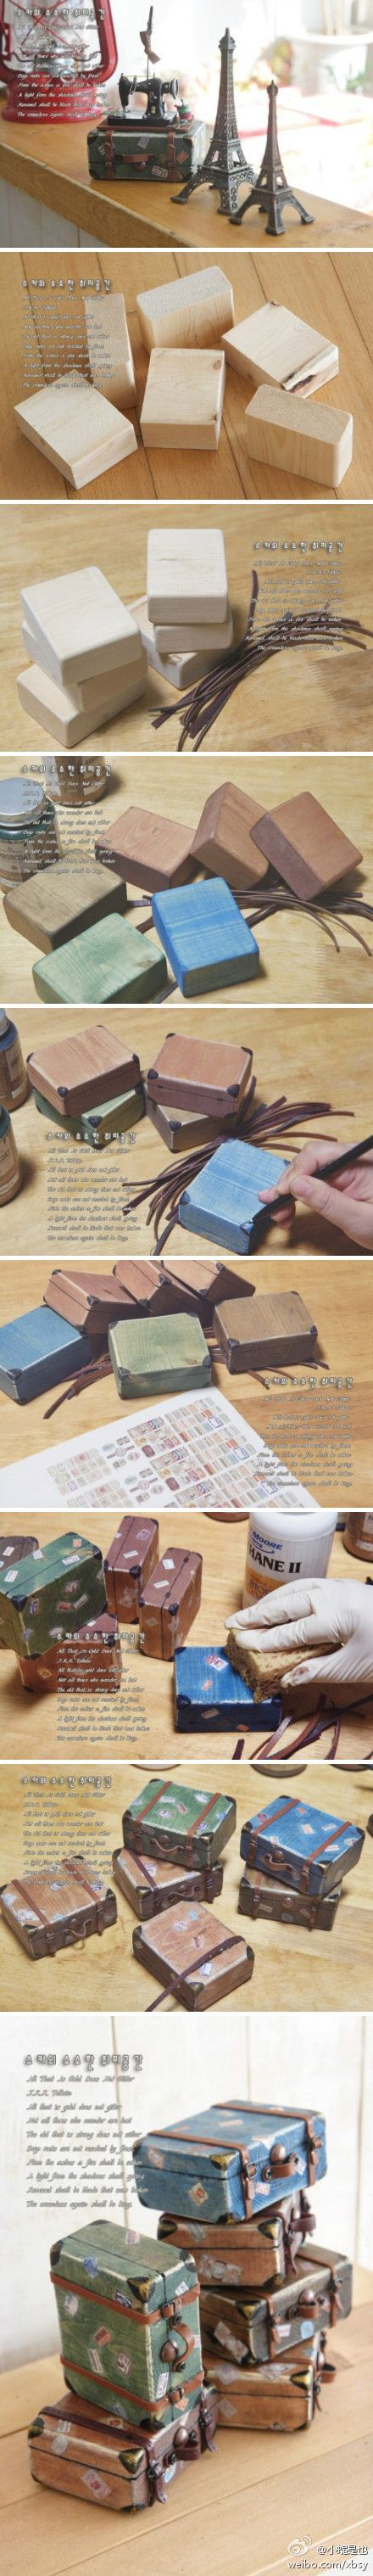 DIY: tiny suitcases tutorial #crafts #cute